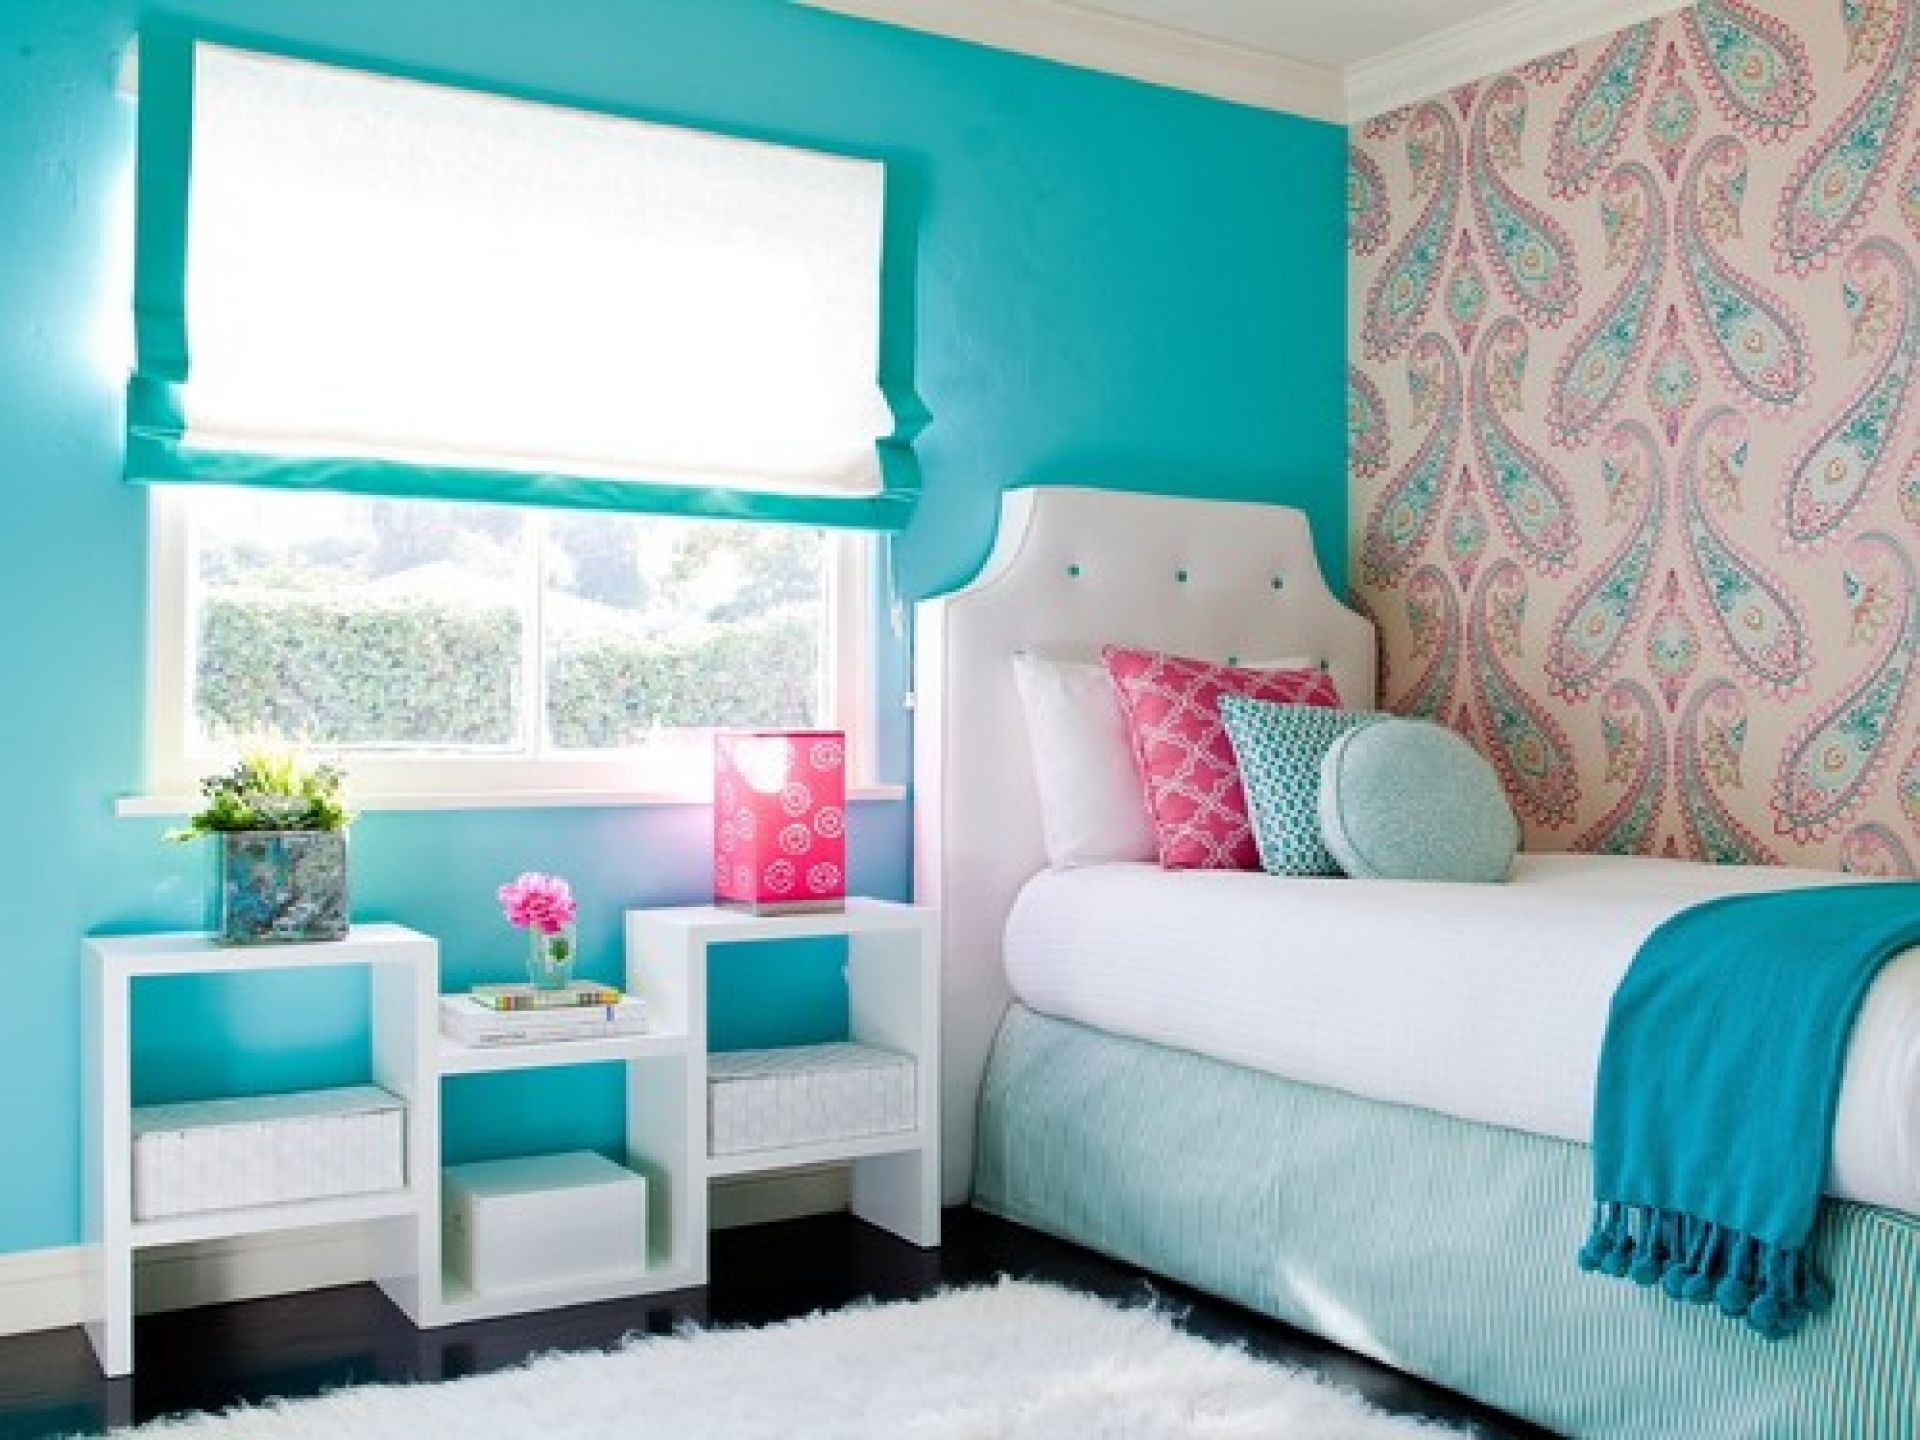 Simple design comfy room colors teenage girl bedroom wall for Simple girls bedroom